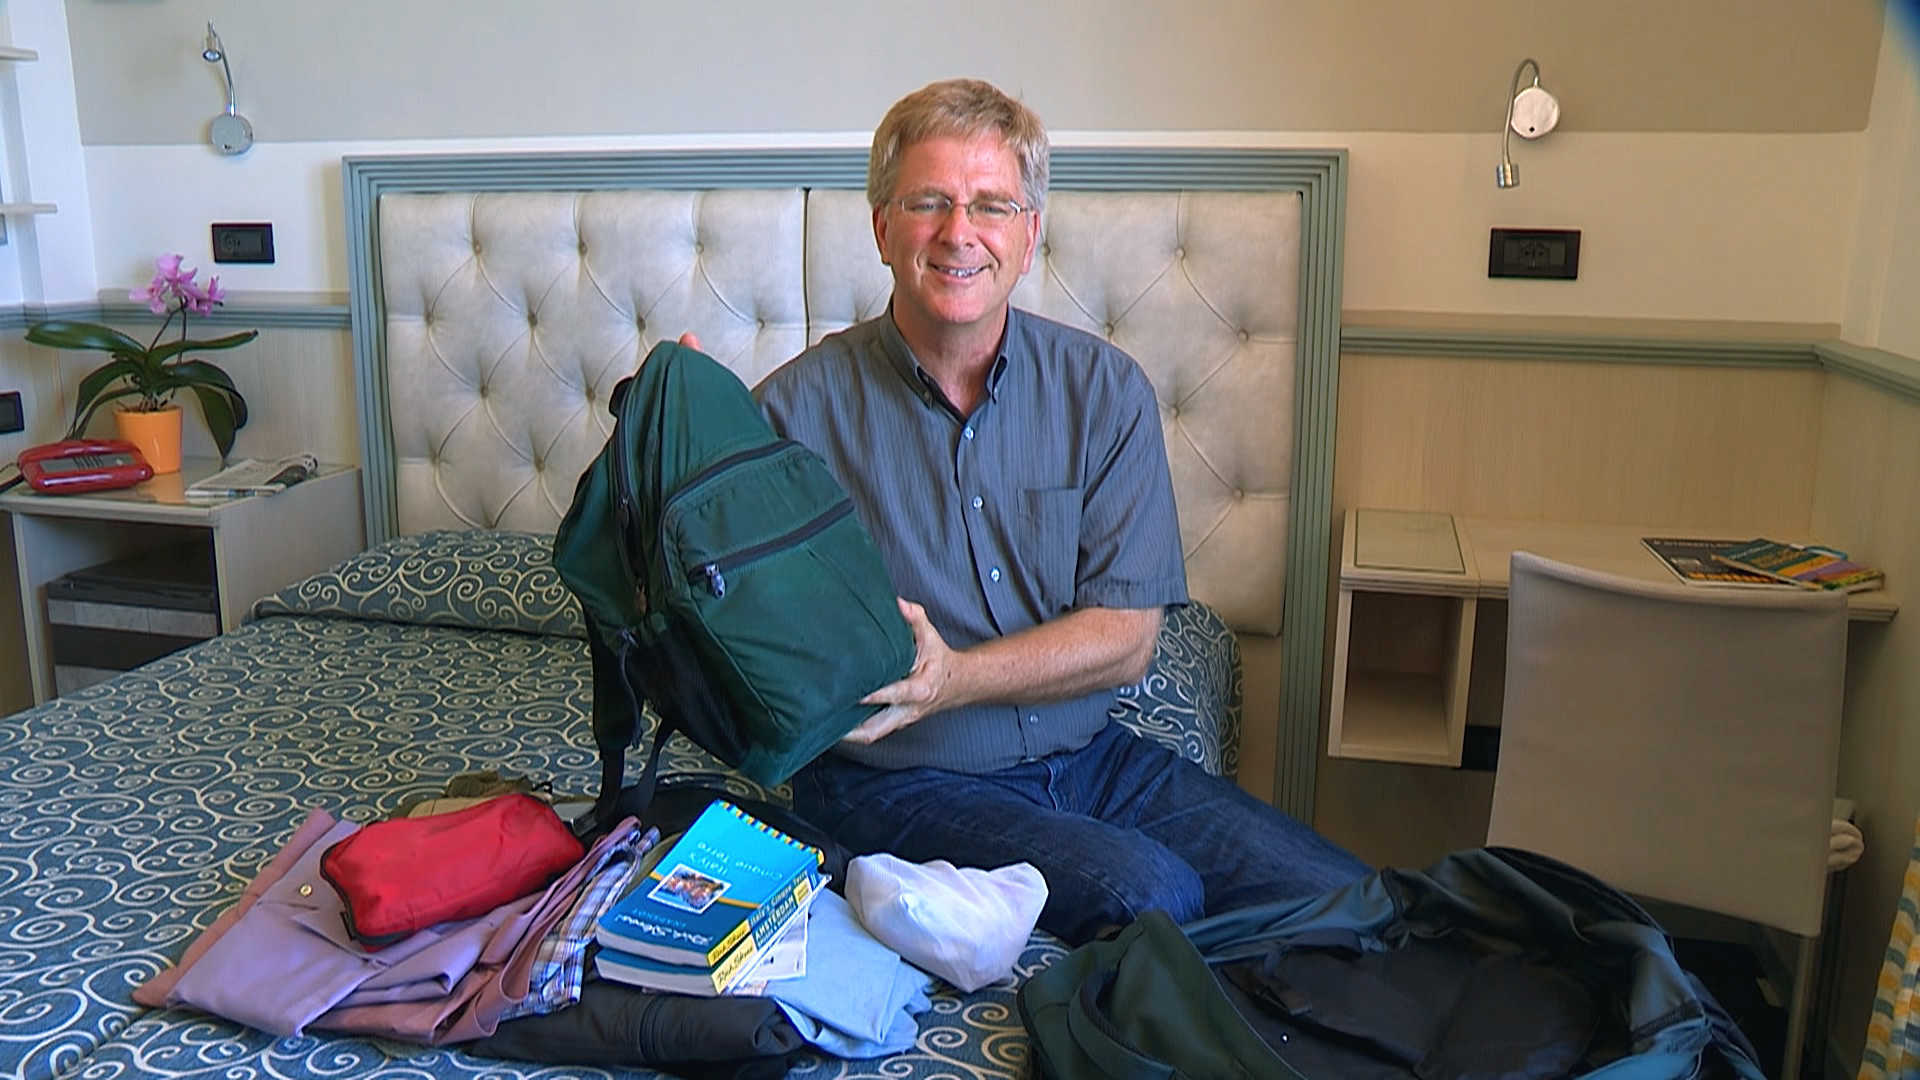 Rick Steves displays how to pack light for Europe